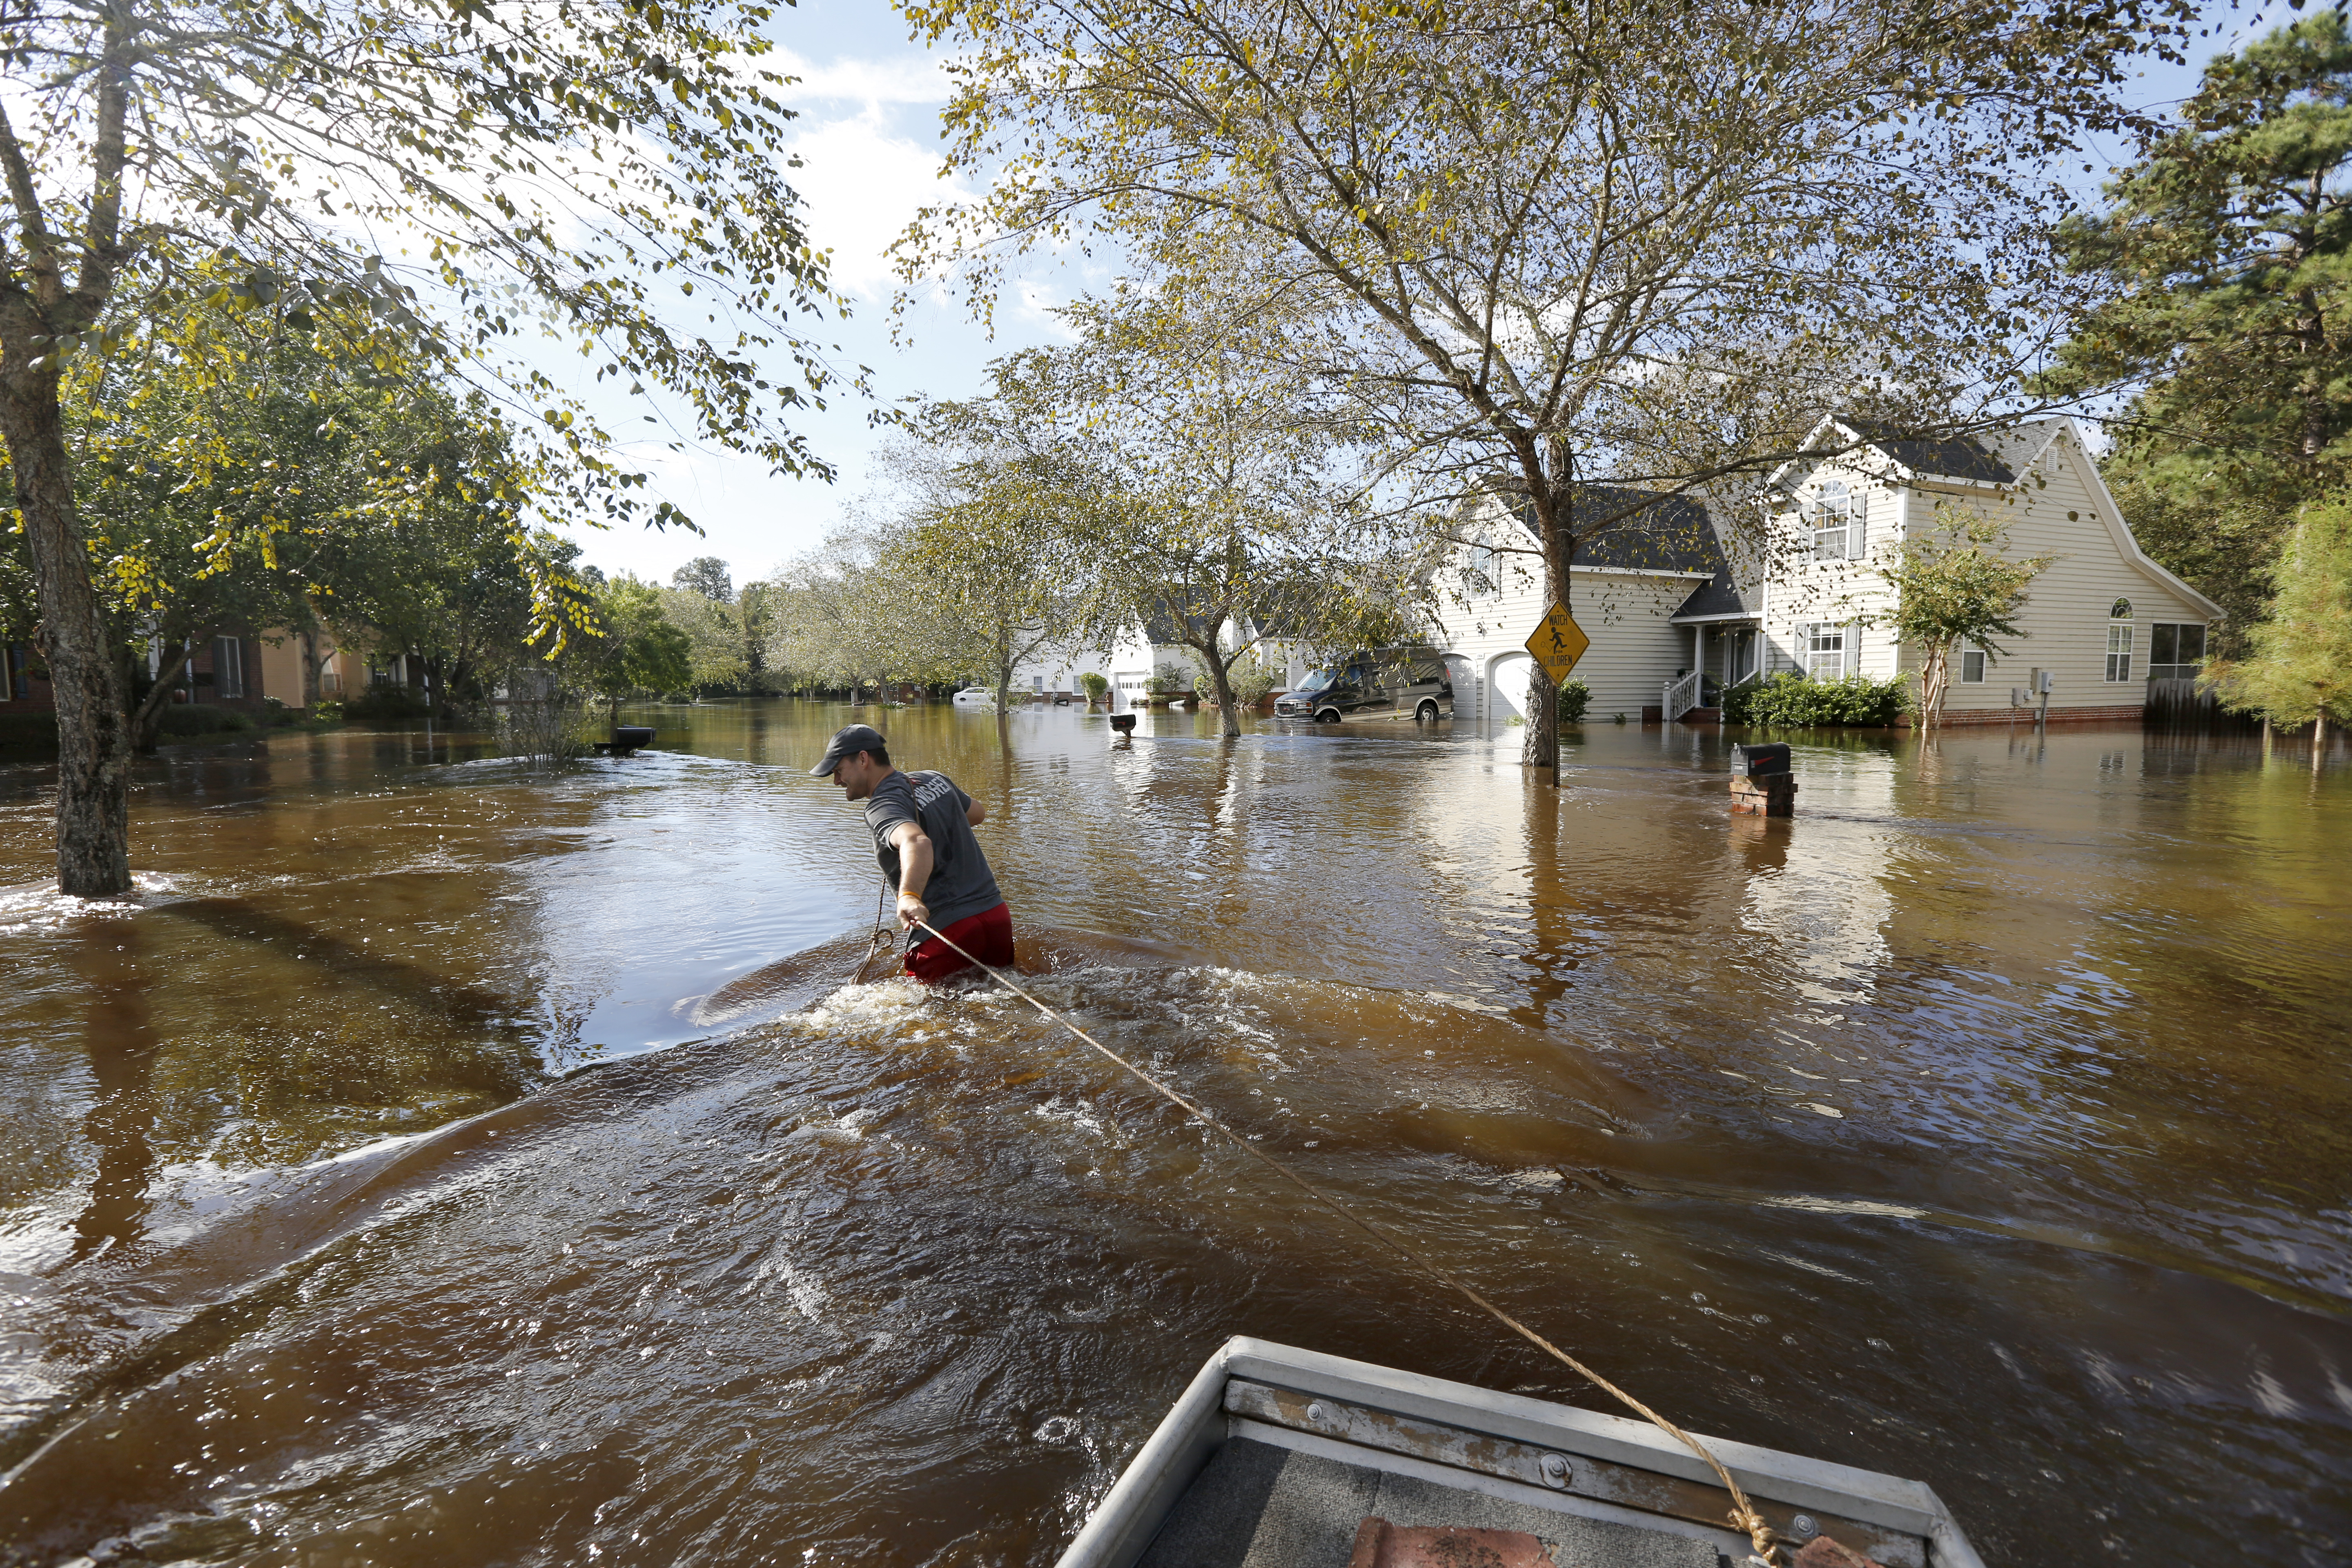 Ethan Abbott pulls his boat down Mayfield St. to help a friend get personal items out of the house in the Ashborough subdivision near Summerville, S.C., Oct. 6, 2015.